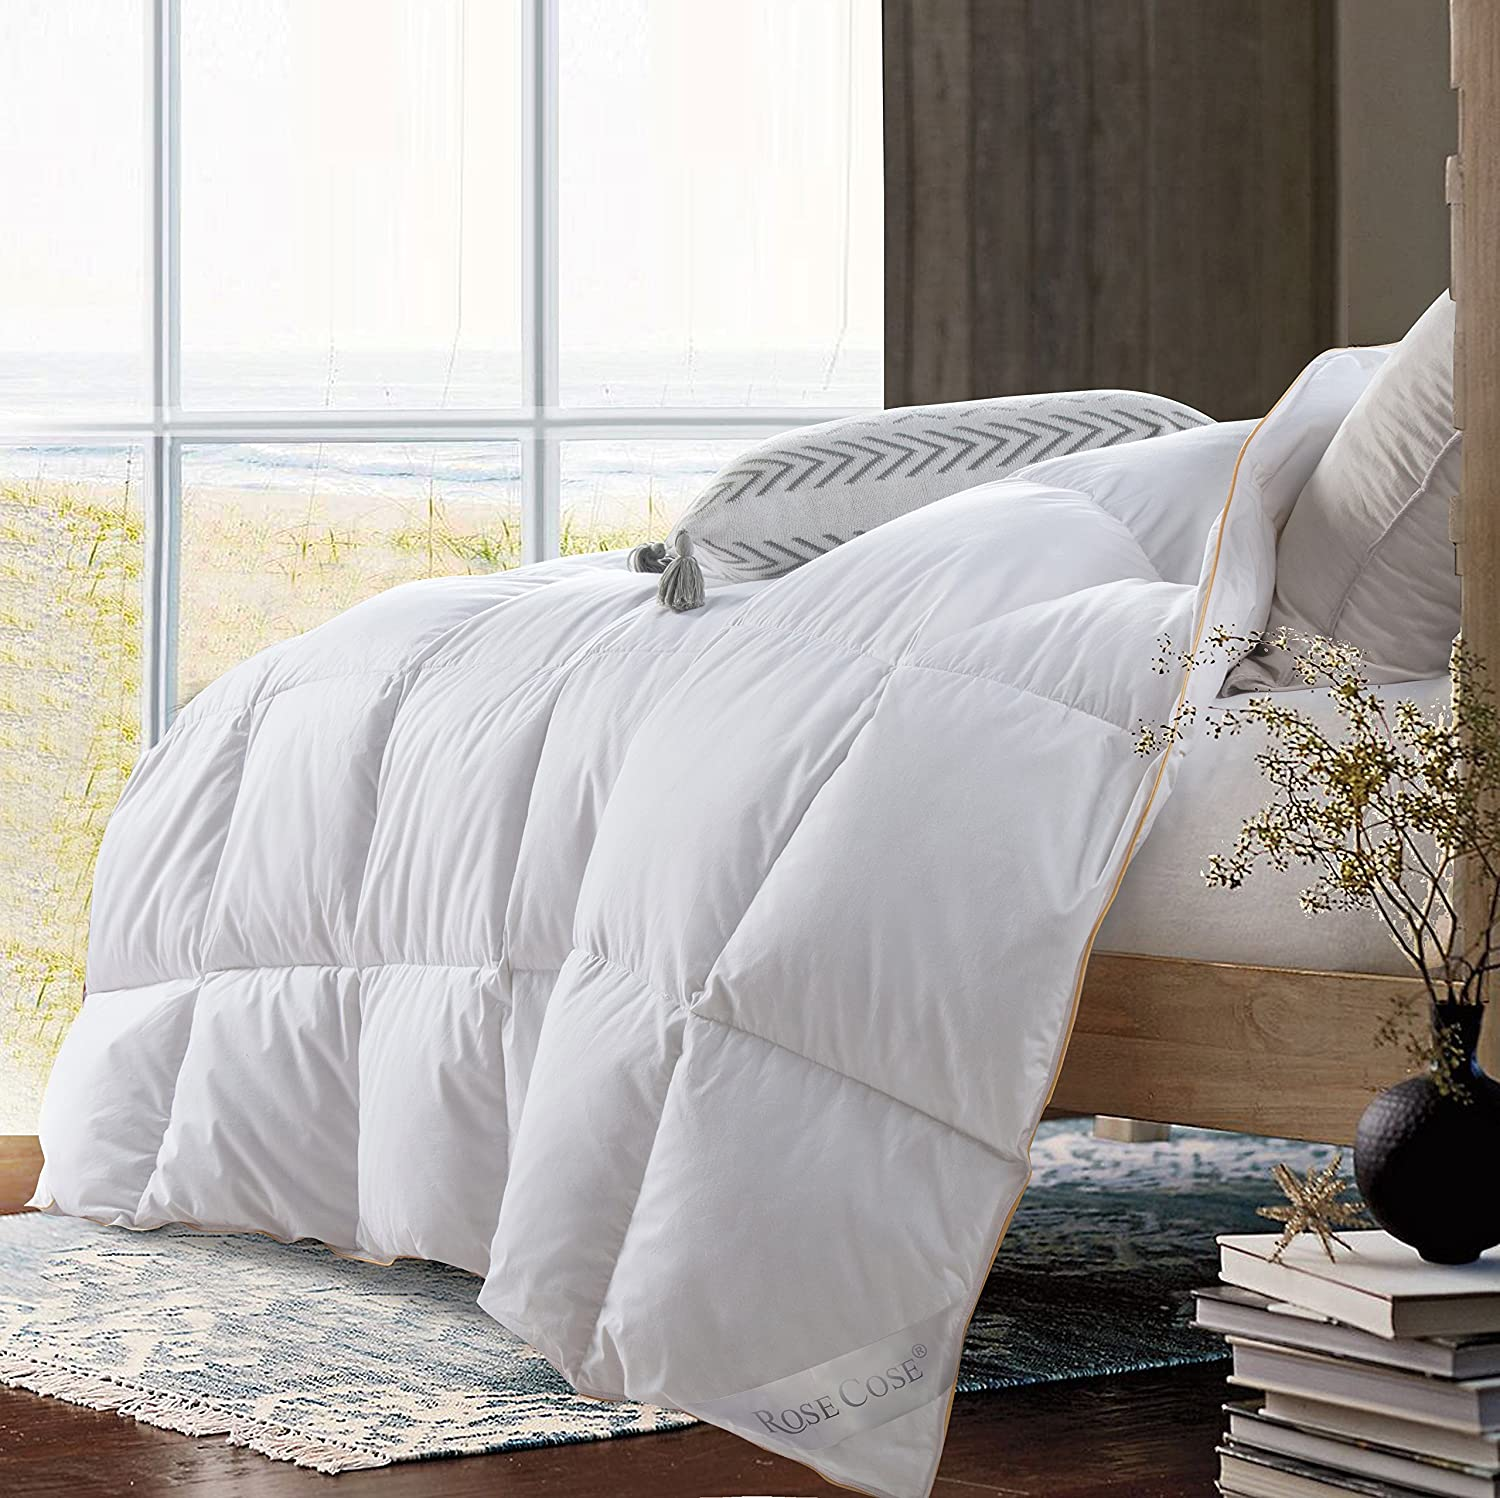 ROSECOSE Luxurious Lightweight Goose Down Comforter